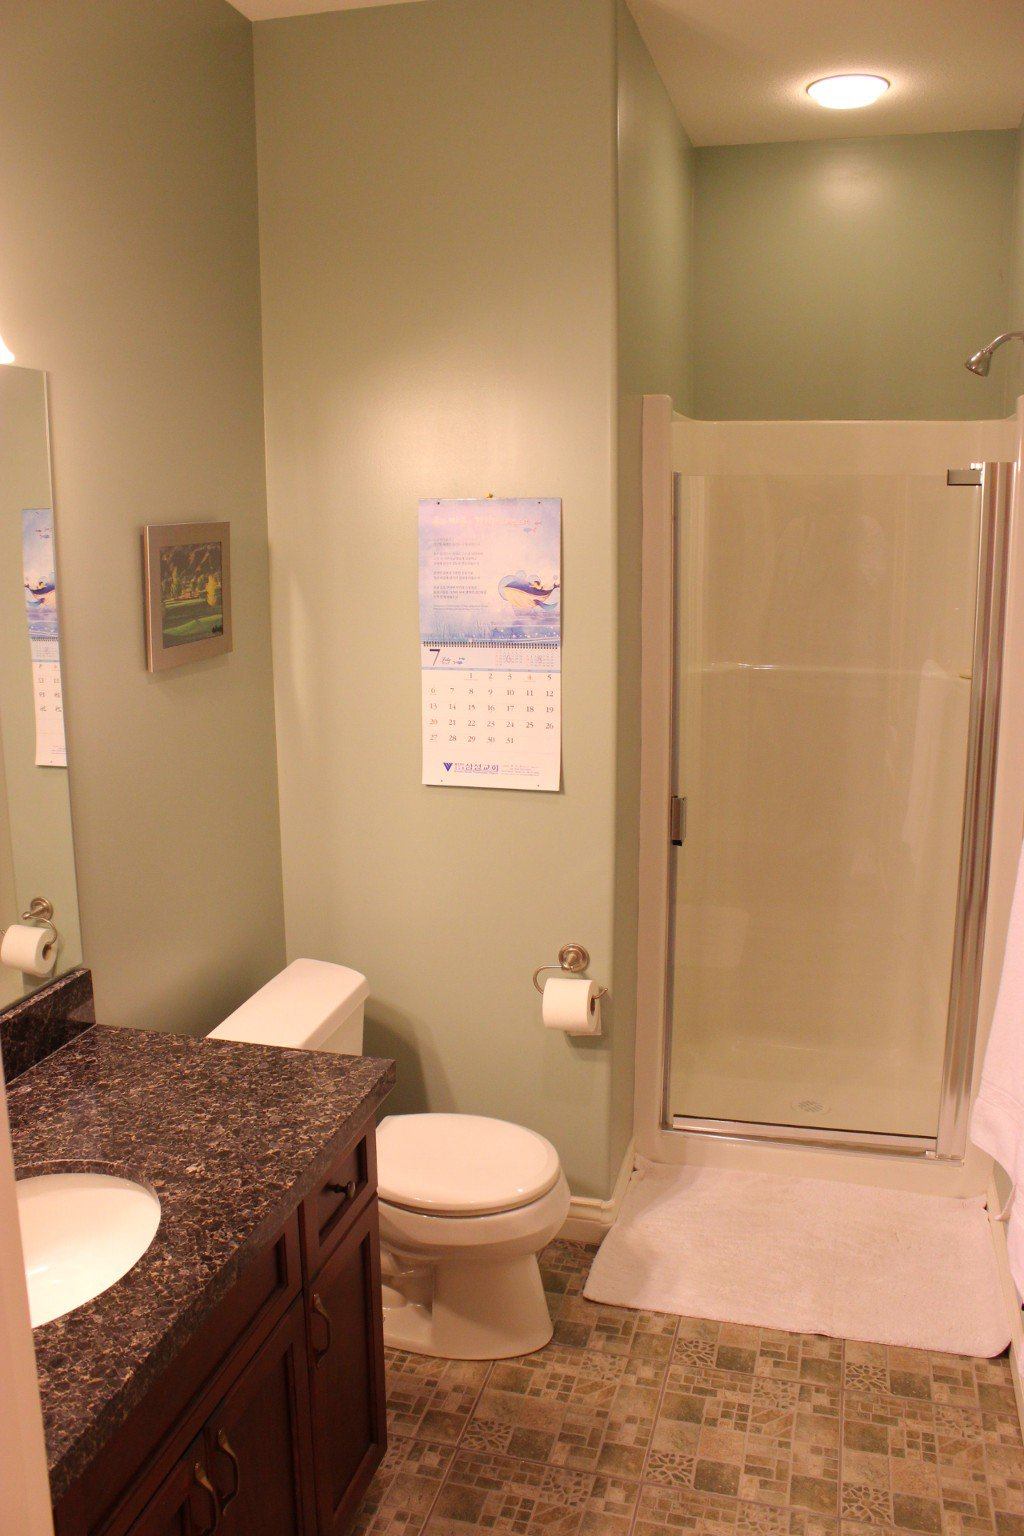 Photo 13: Photos: 3728 Navatanee Drive in Kamloops: Campbell Cr/Del Oro House for sale : MLS®# 126289